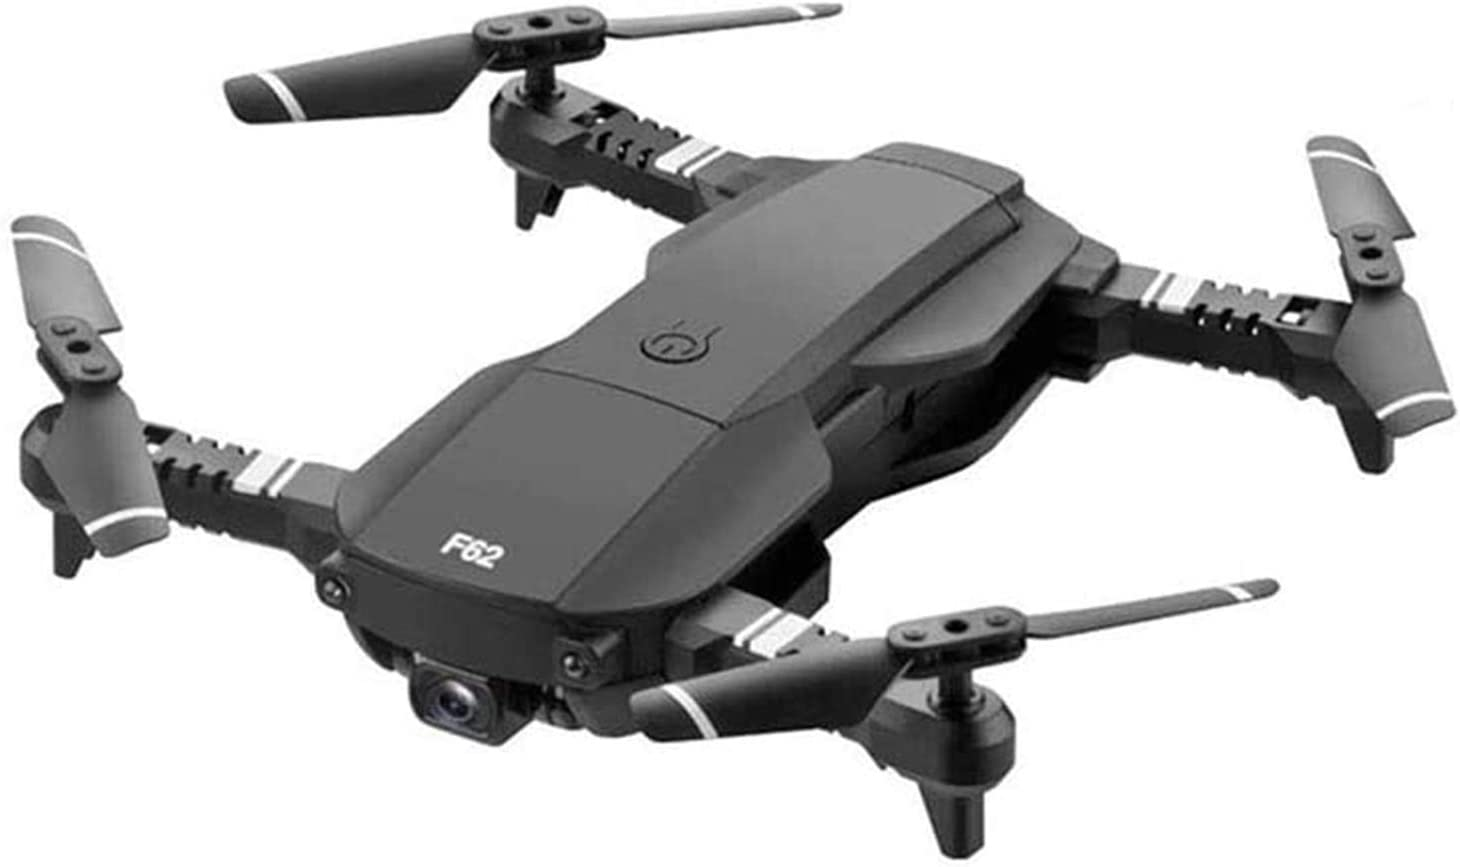 GPS Return Home Quadcopter, FPV RC Drone with Camera Live Video, Adjustable Wide Angle 4K HD WiFi Camera, Follow Me, Intelligent Battery, Headless Mode, Altitude Hold, Mobile APP Control